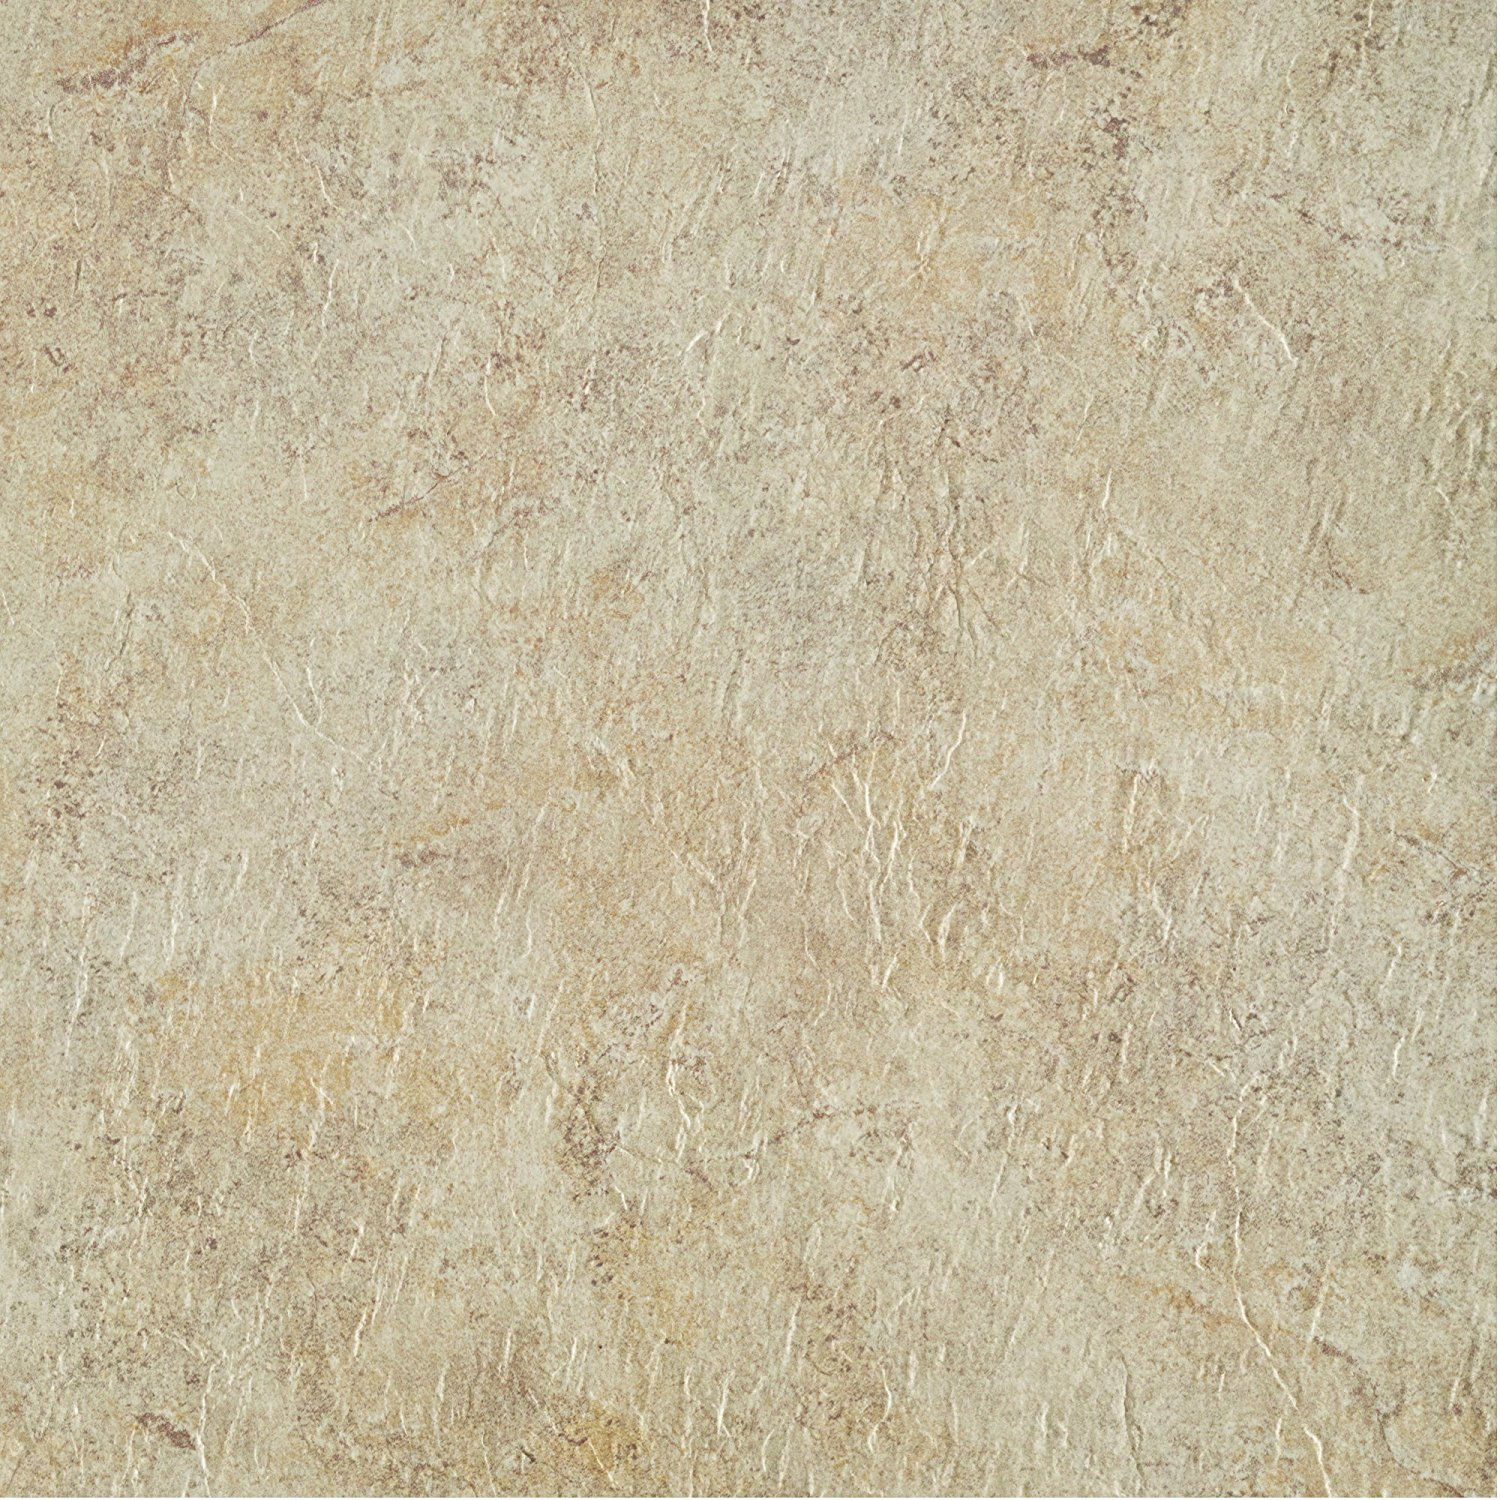 MJVT180310 Majestic Vinyl Floor Tile, 18 x 18 inches, Ghibli Beige Granite, 10-Pack, Just Peel 'N' Stick By Achim Home Furnishings from USA